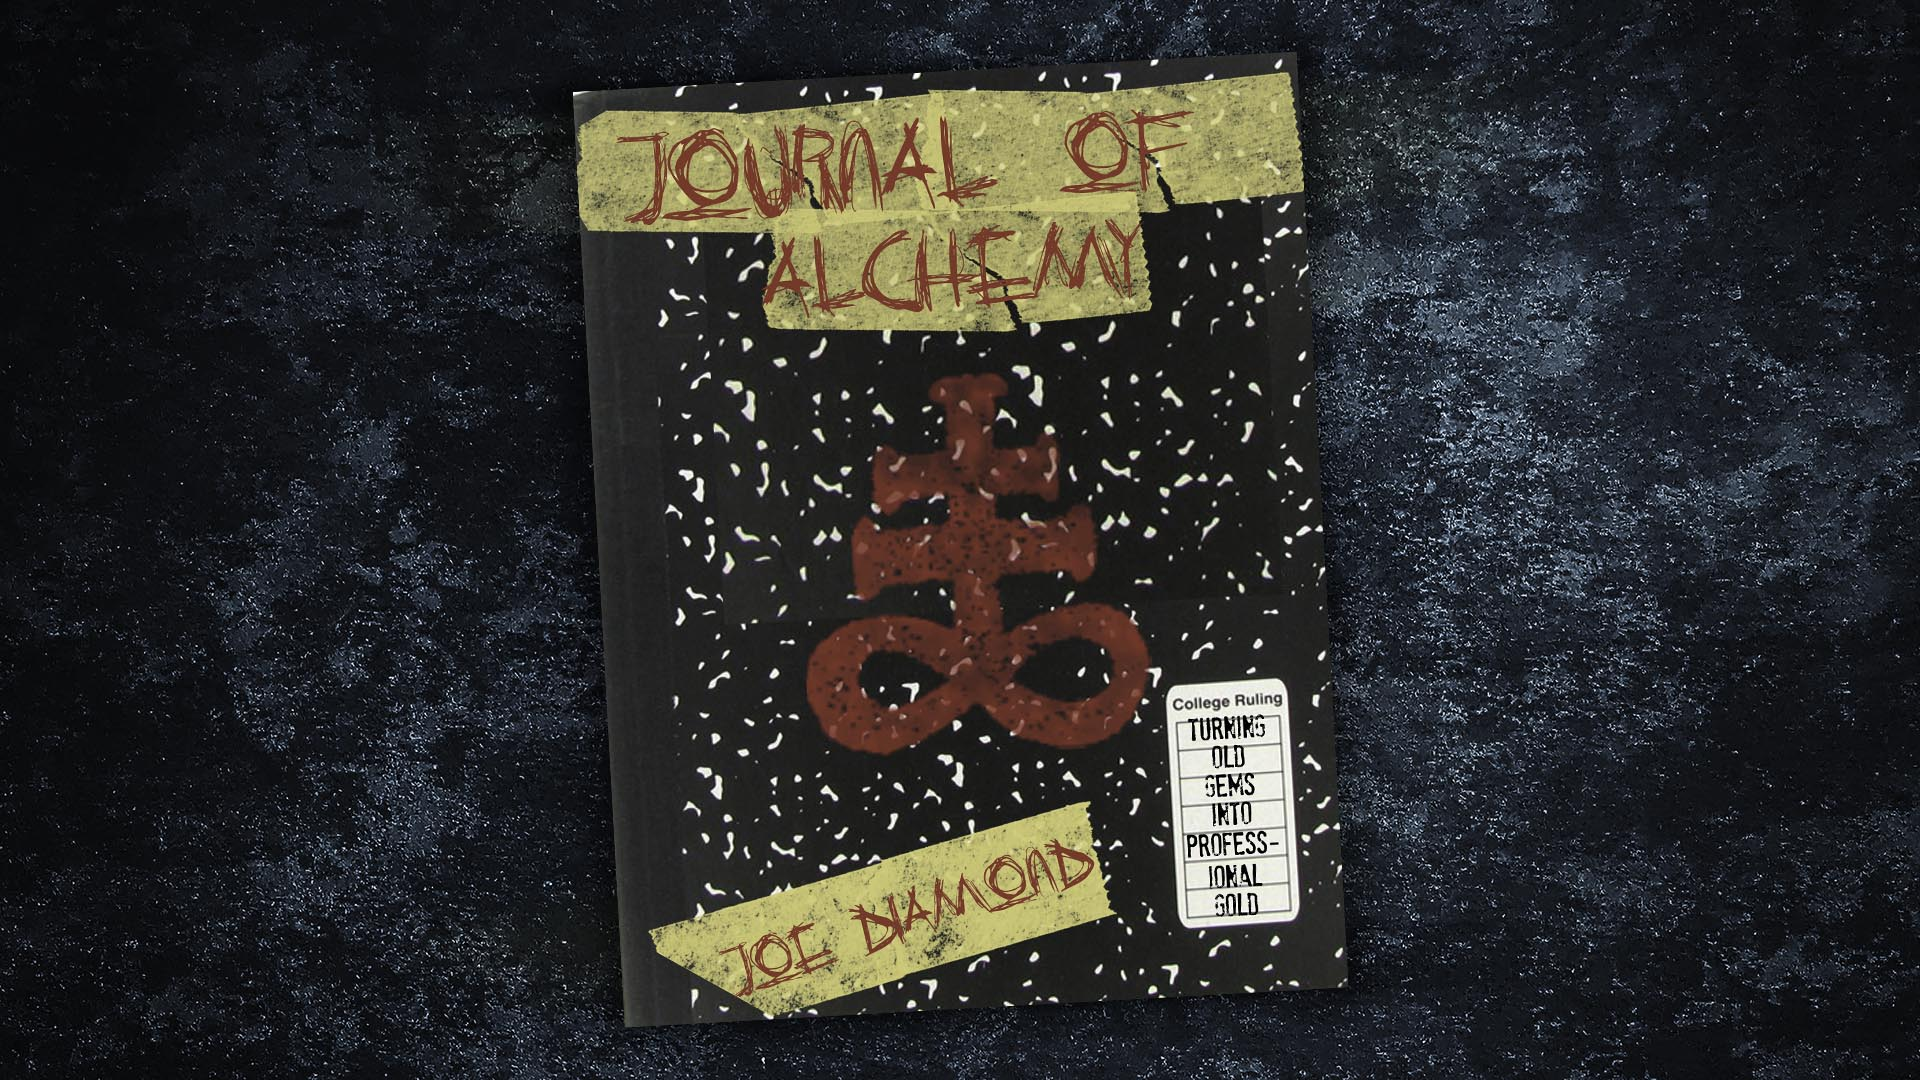 Journal of Alchemy - magic